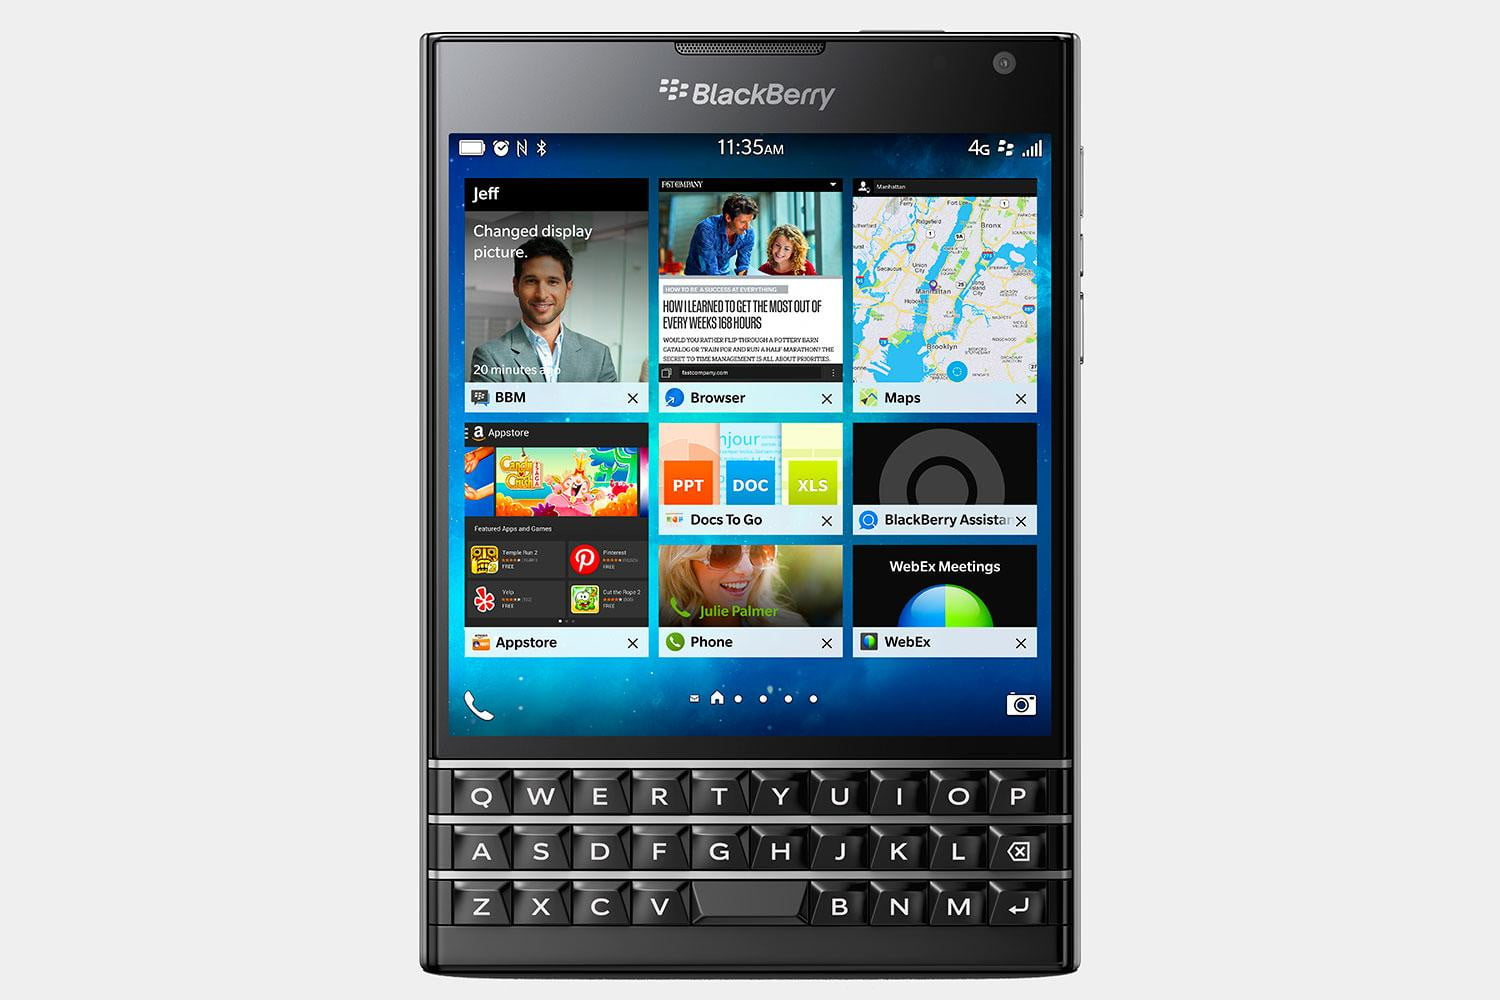 Camera Blackberry Phone Android blackberry priv news blackberrys android phone strikes a pose in earlier reports said the prague would resemble z3 but this image looks more like passport pictured below